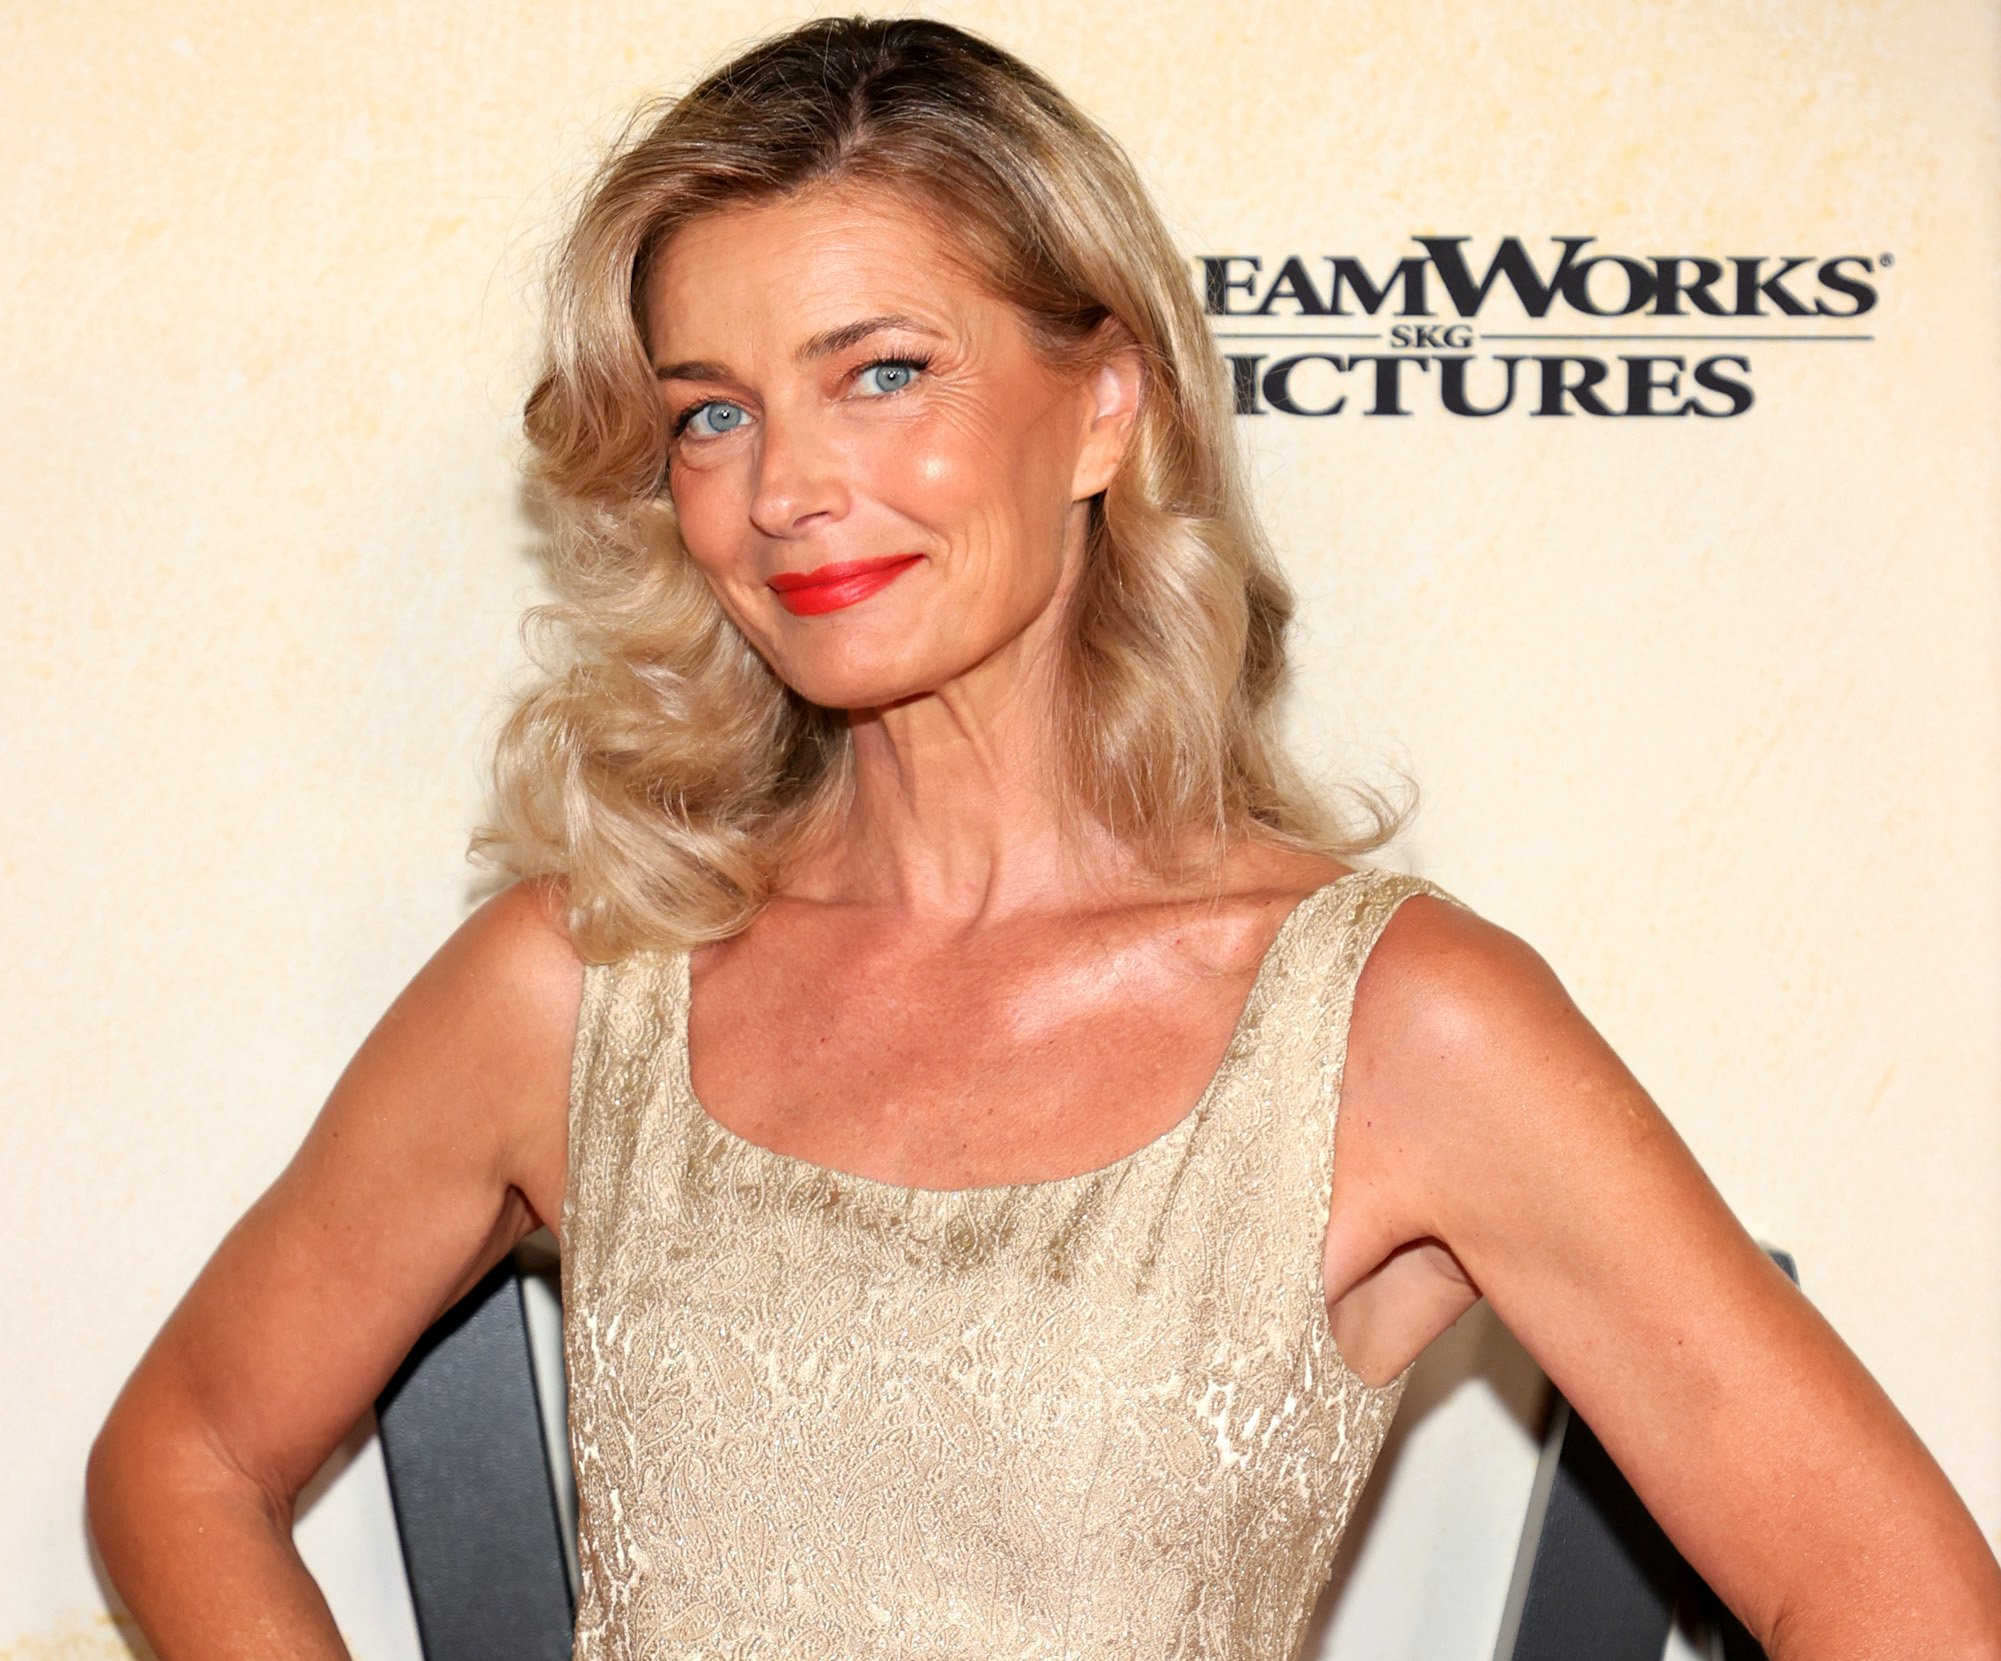 GettyImages 1330803164 The 10 Biggest Supermodels Of The 80s And What They Look Like Now